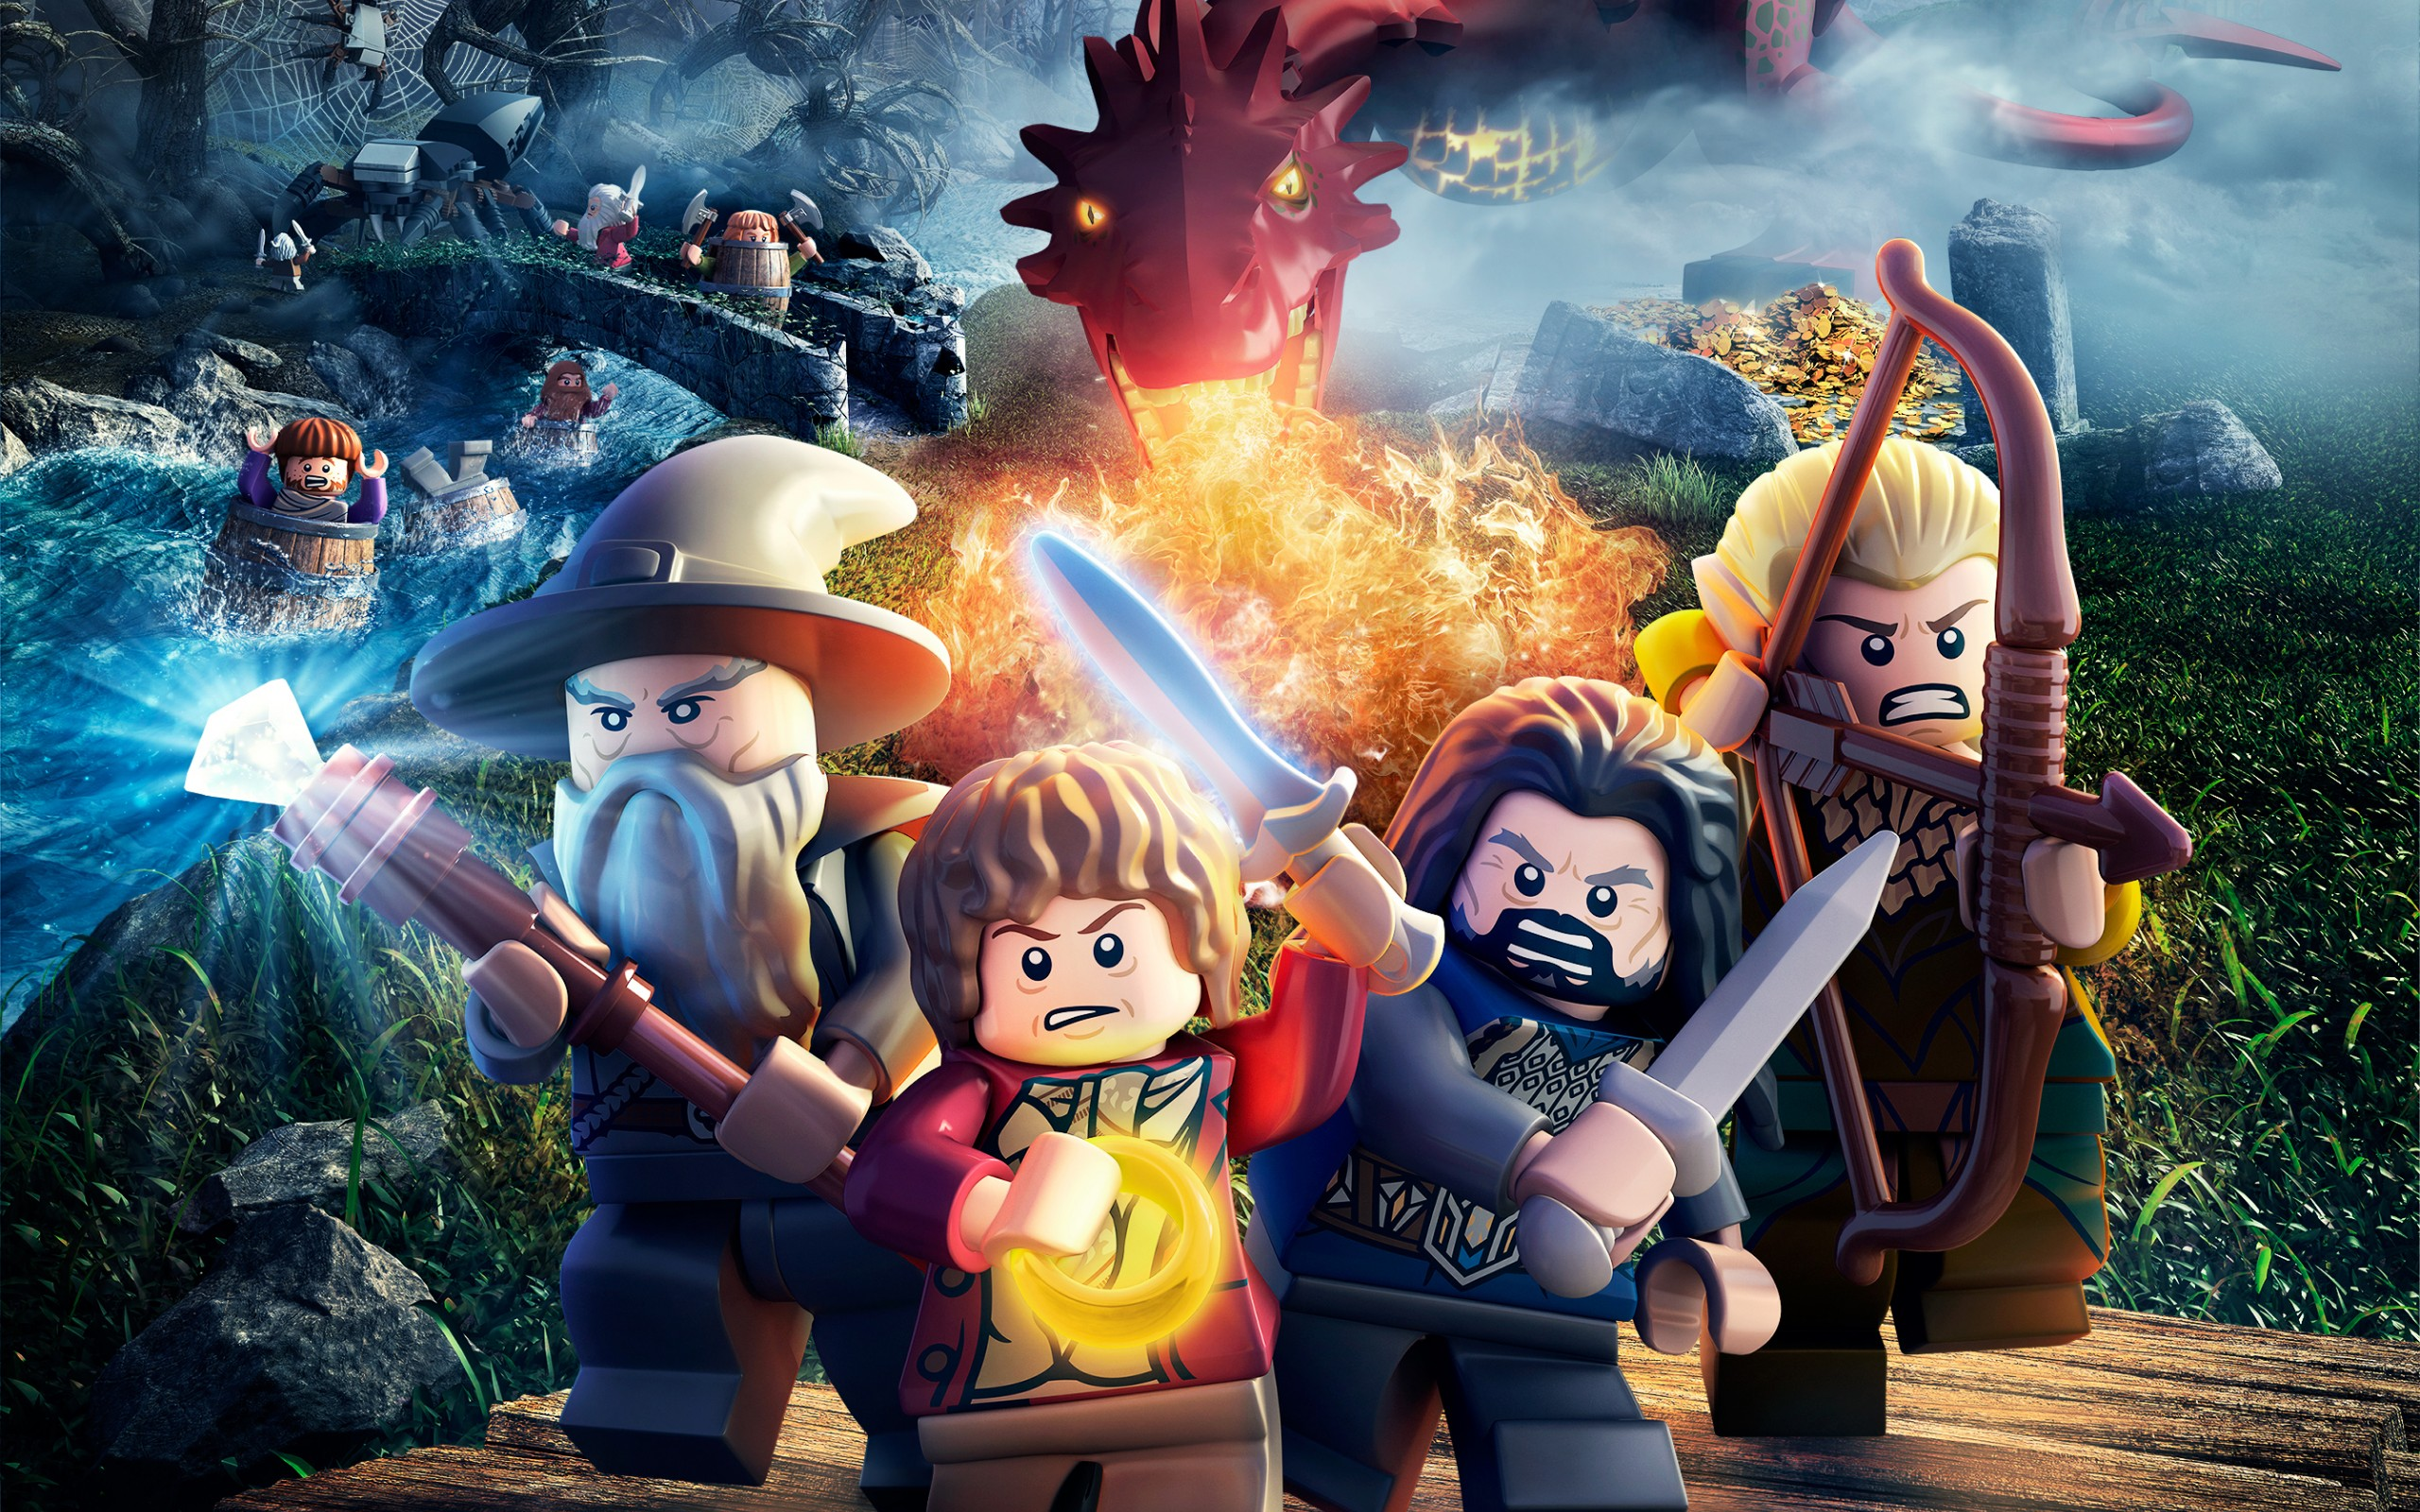 HD Wallpapers LEGO The Hobbit Game